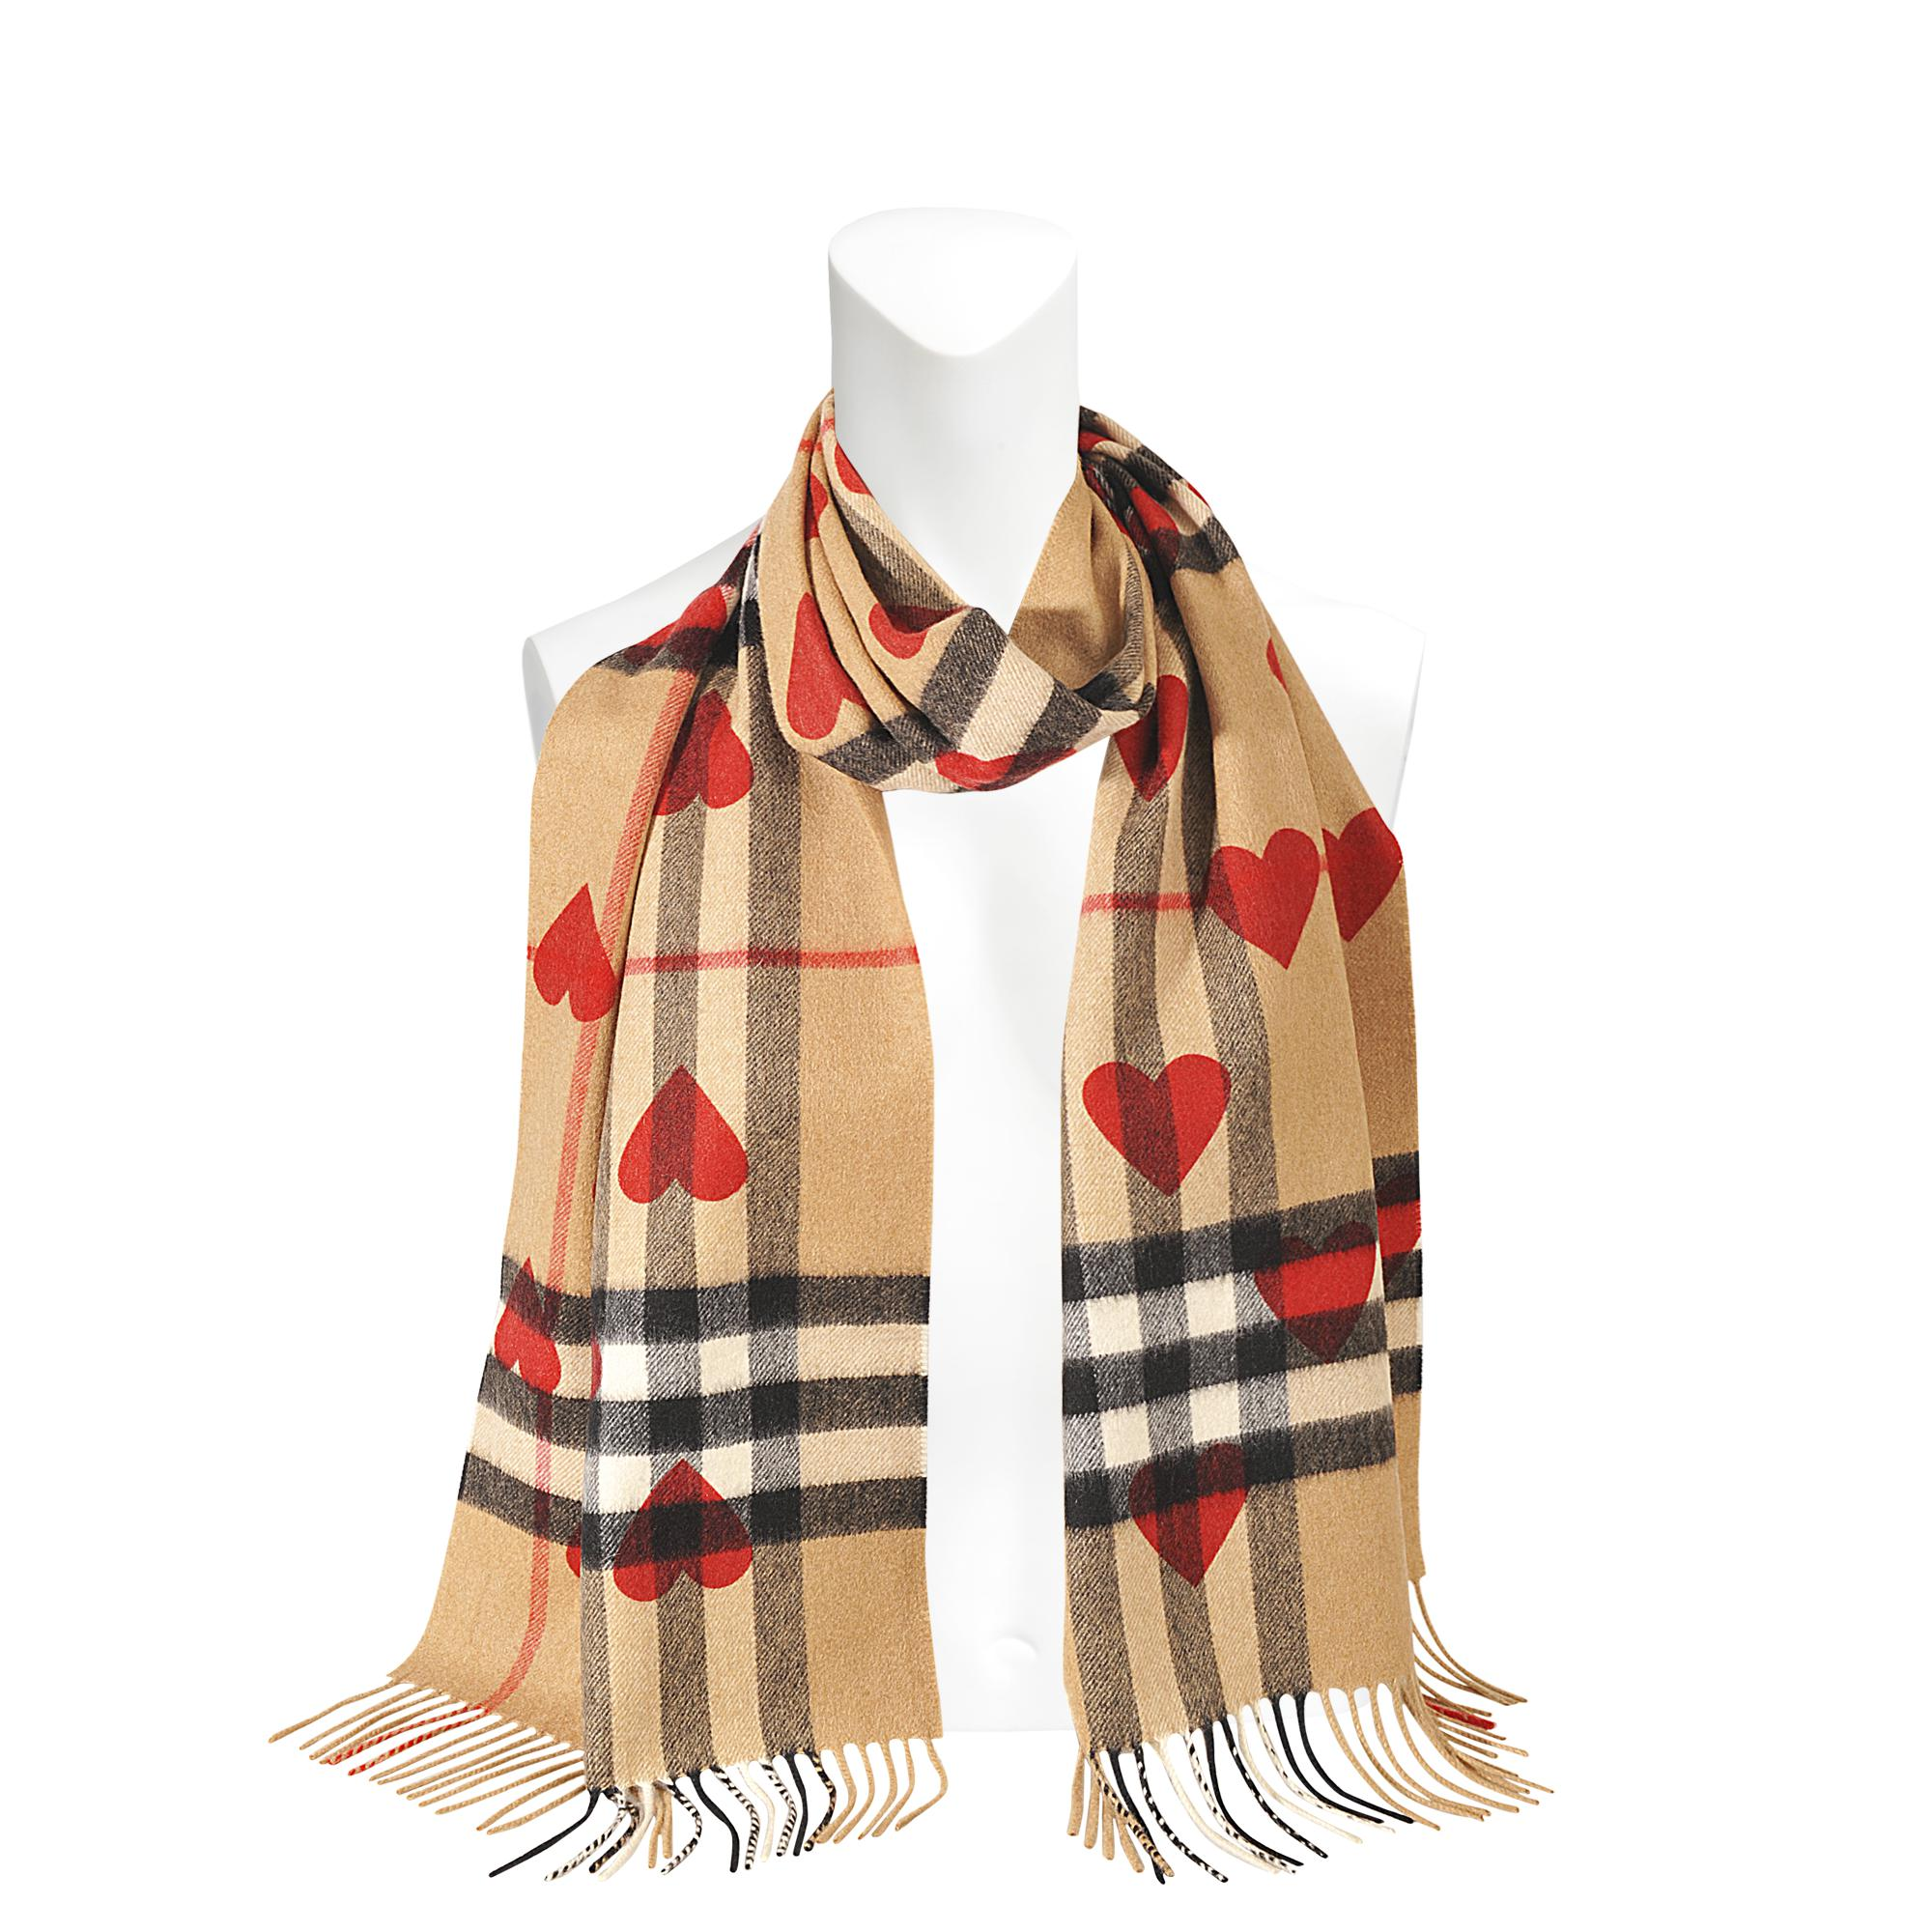 168X30 Classic Check Cashmere Scarf in Camel Cashmere Burberry Ost Release Dates New Online Extremely Cheap Price Best Seller Cheap Online MsmT6saM